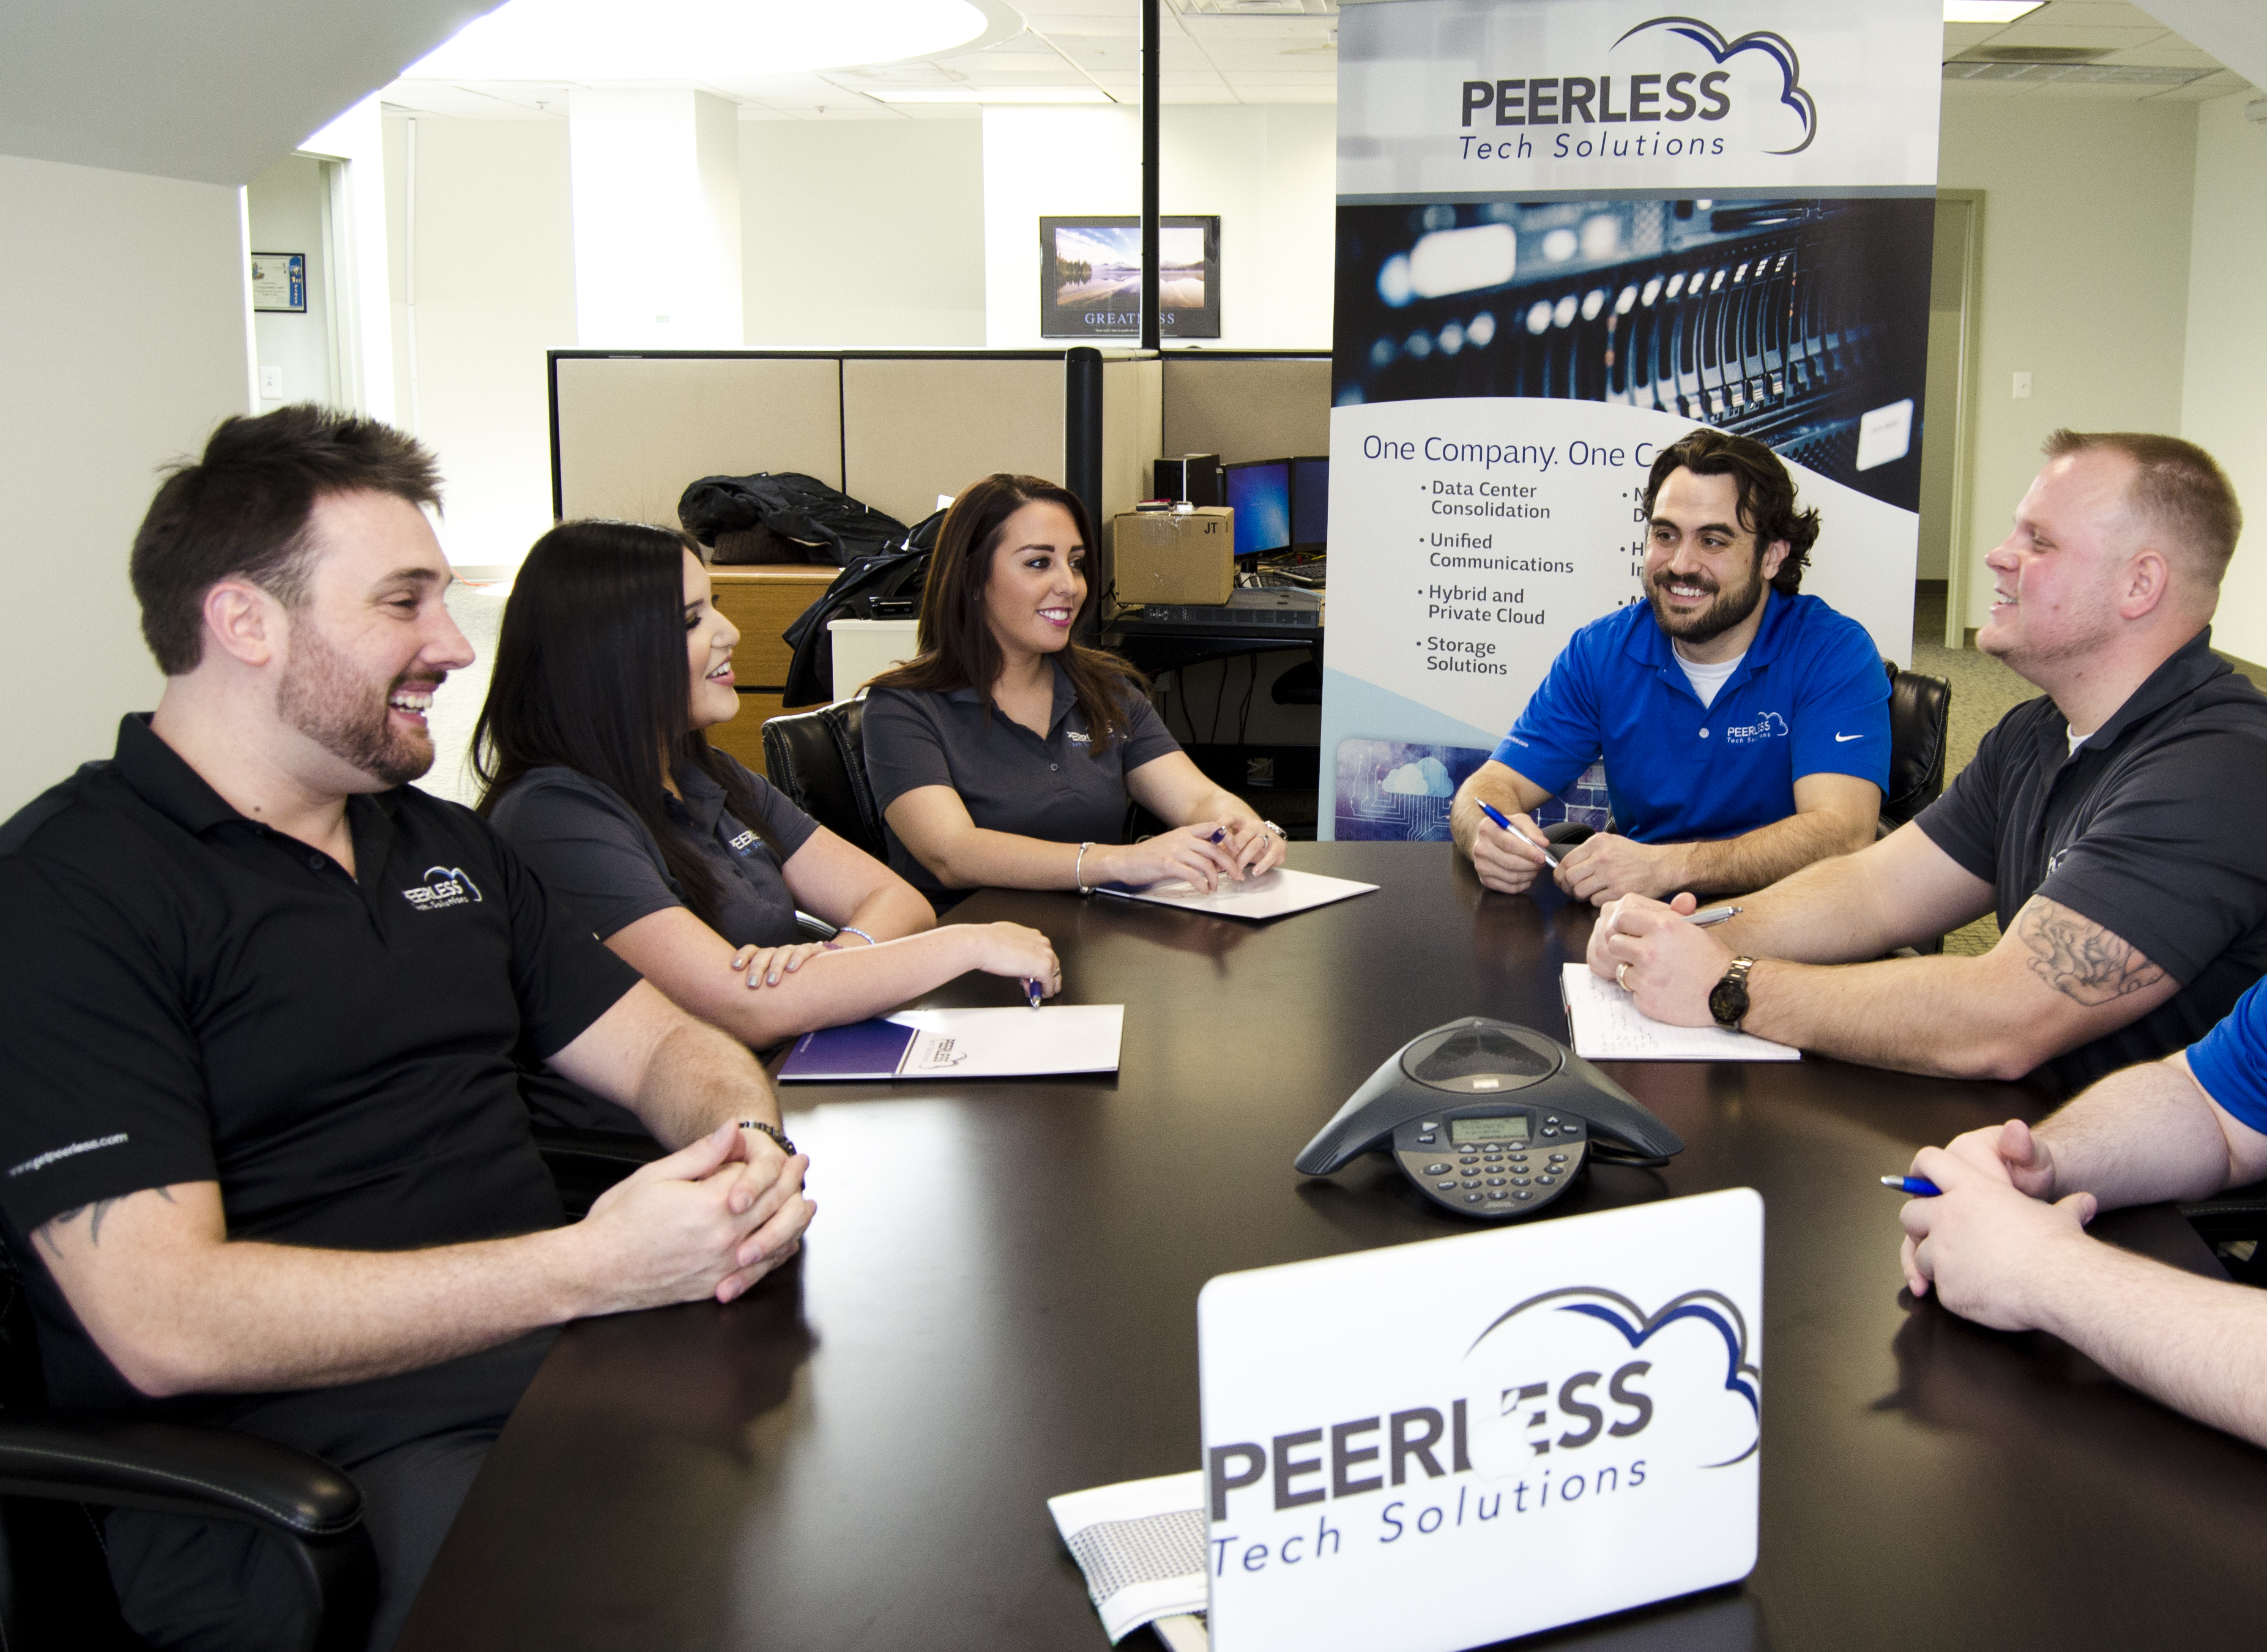 Staff | Peerless Tech Solutions